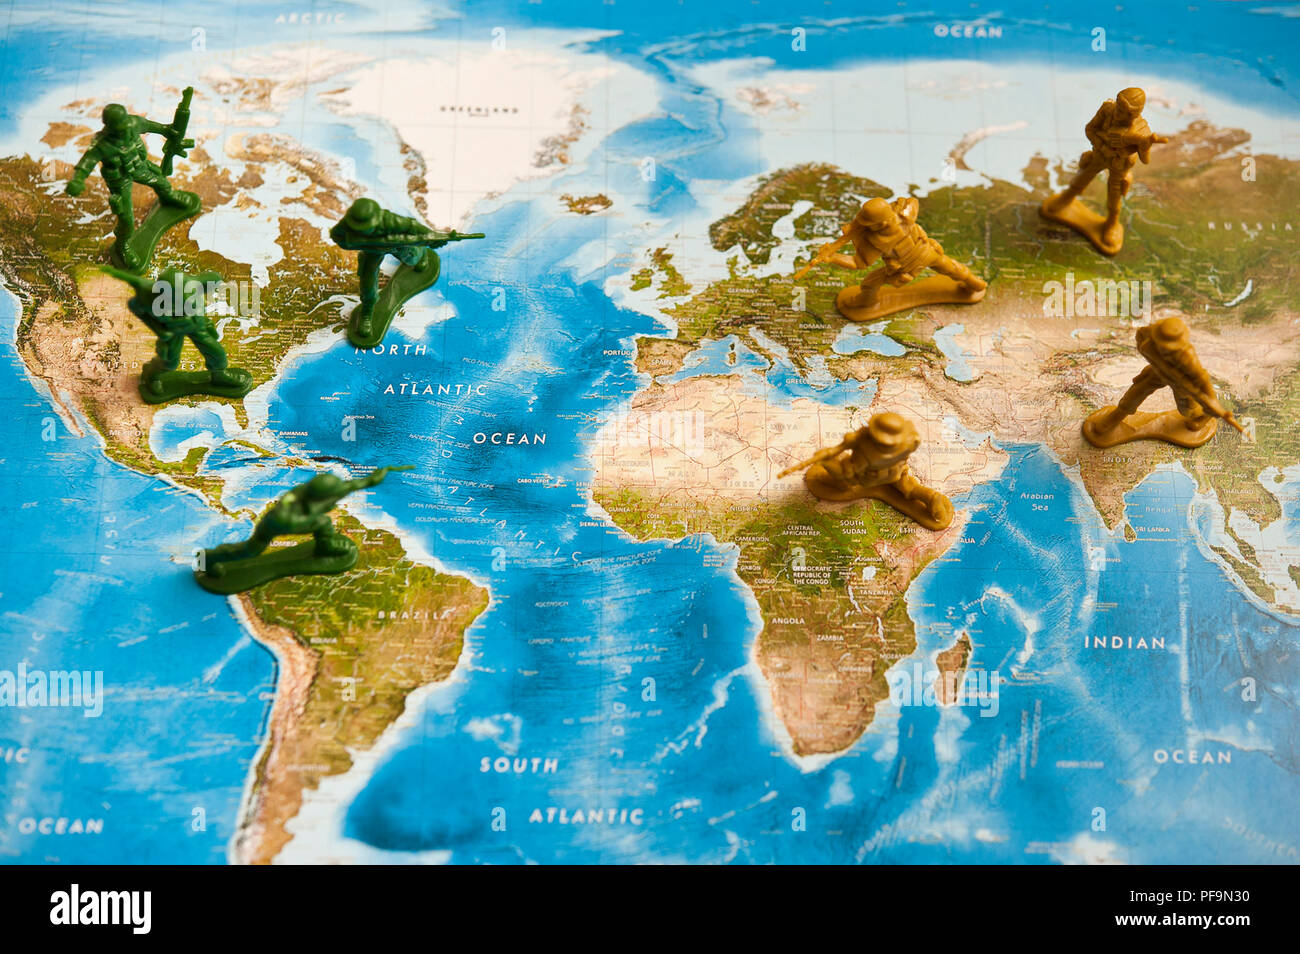 toy plastic soldiers armies facing each other on a world map - Stock Image